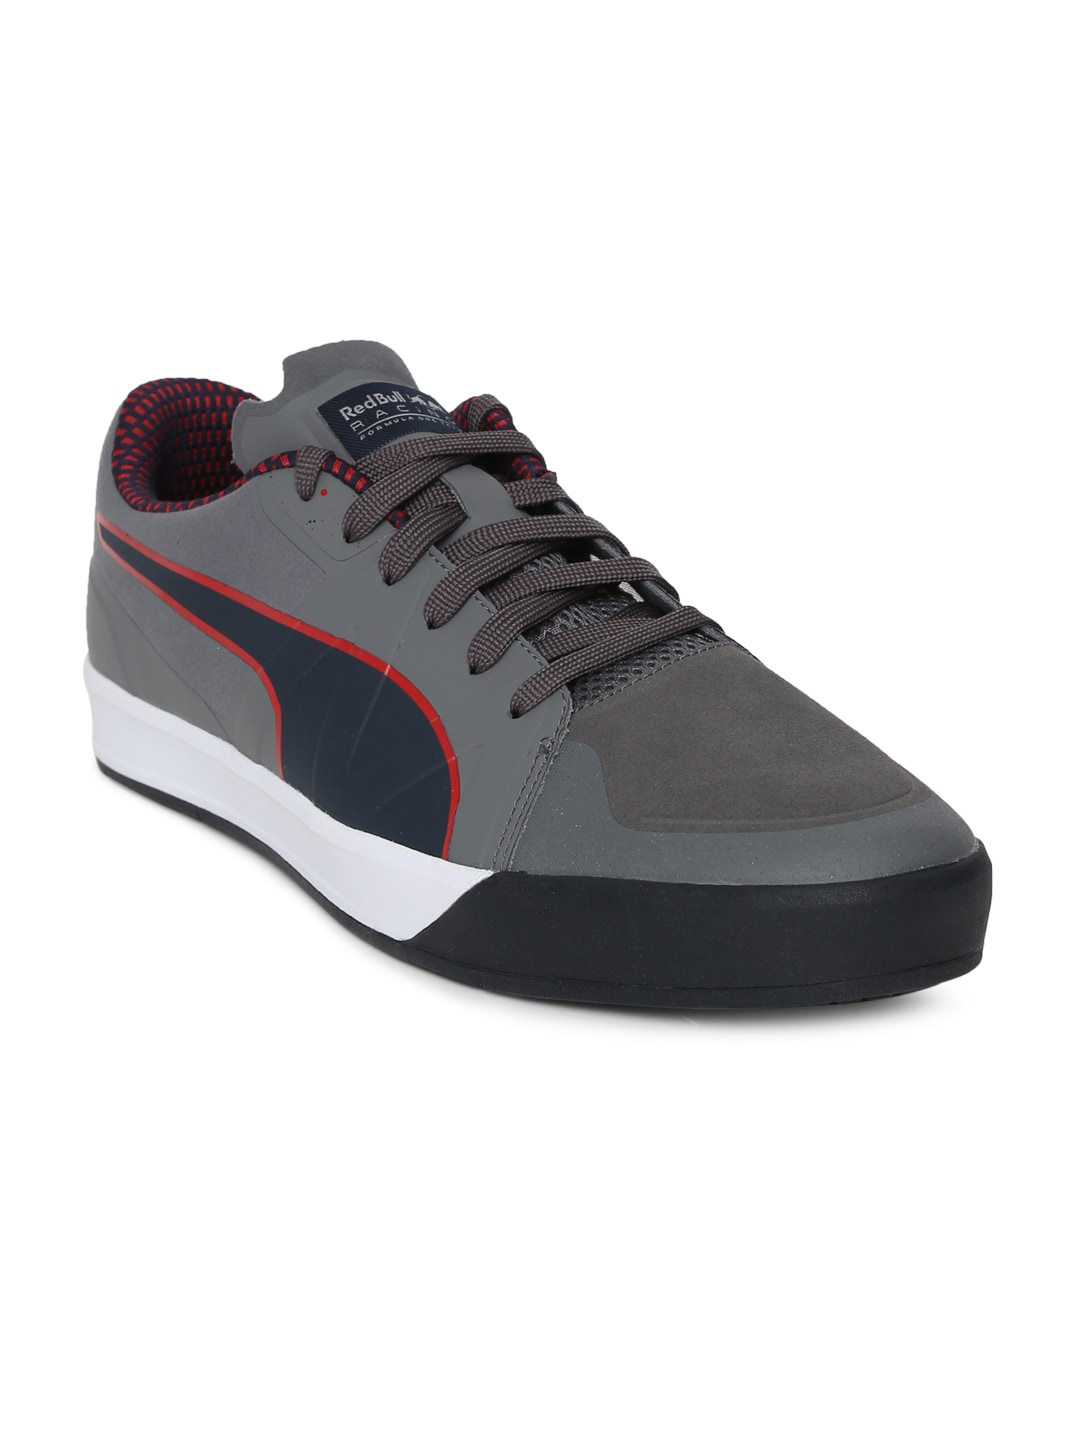 b6188dc9dc3 Buy Puma Unisex Navy Blue RBR Wings Vulc Sneakers - Casual Shoes for ...